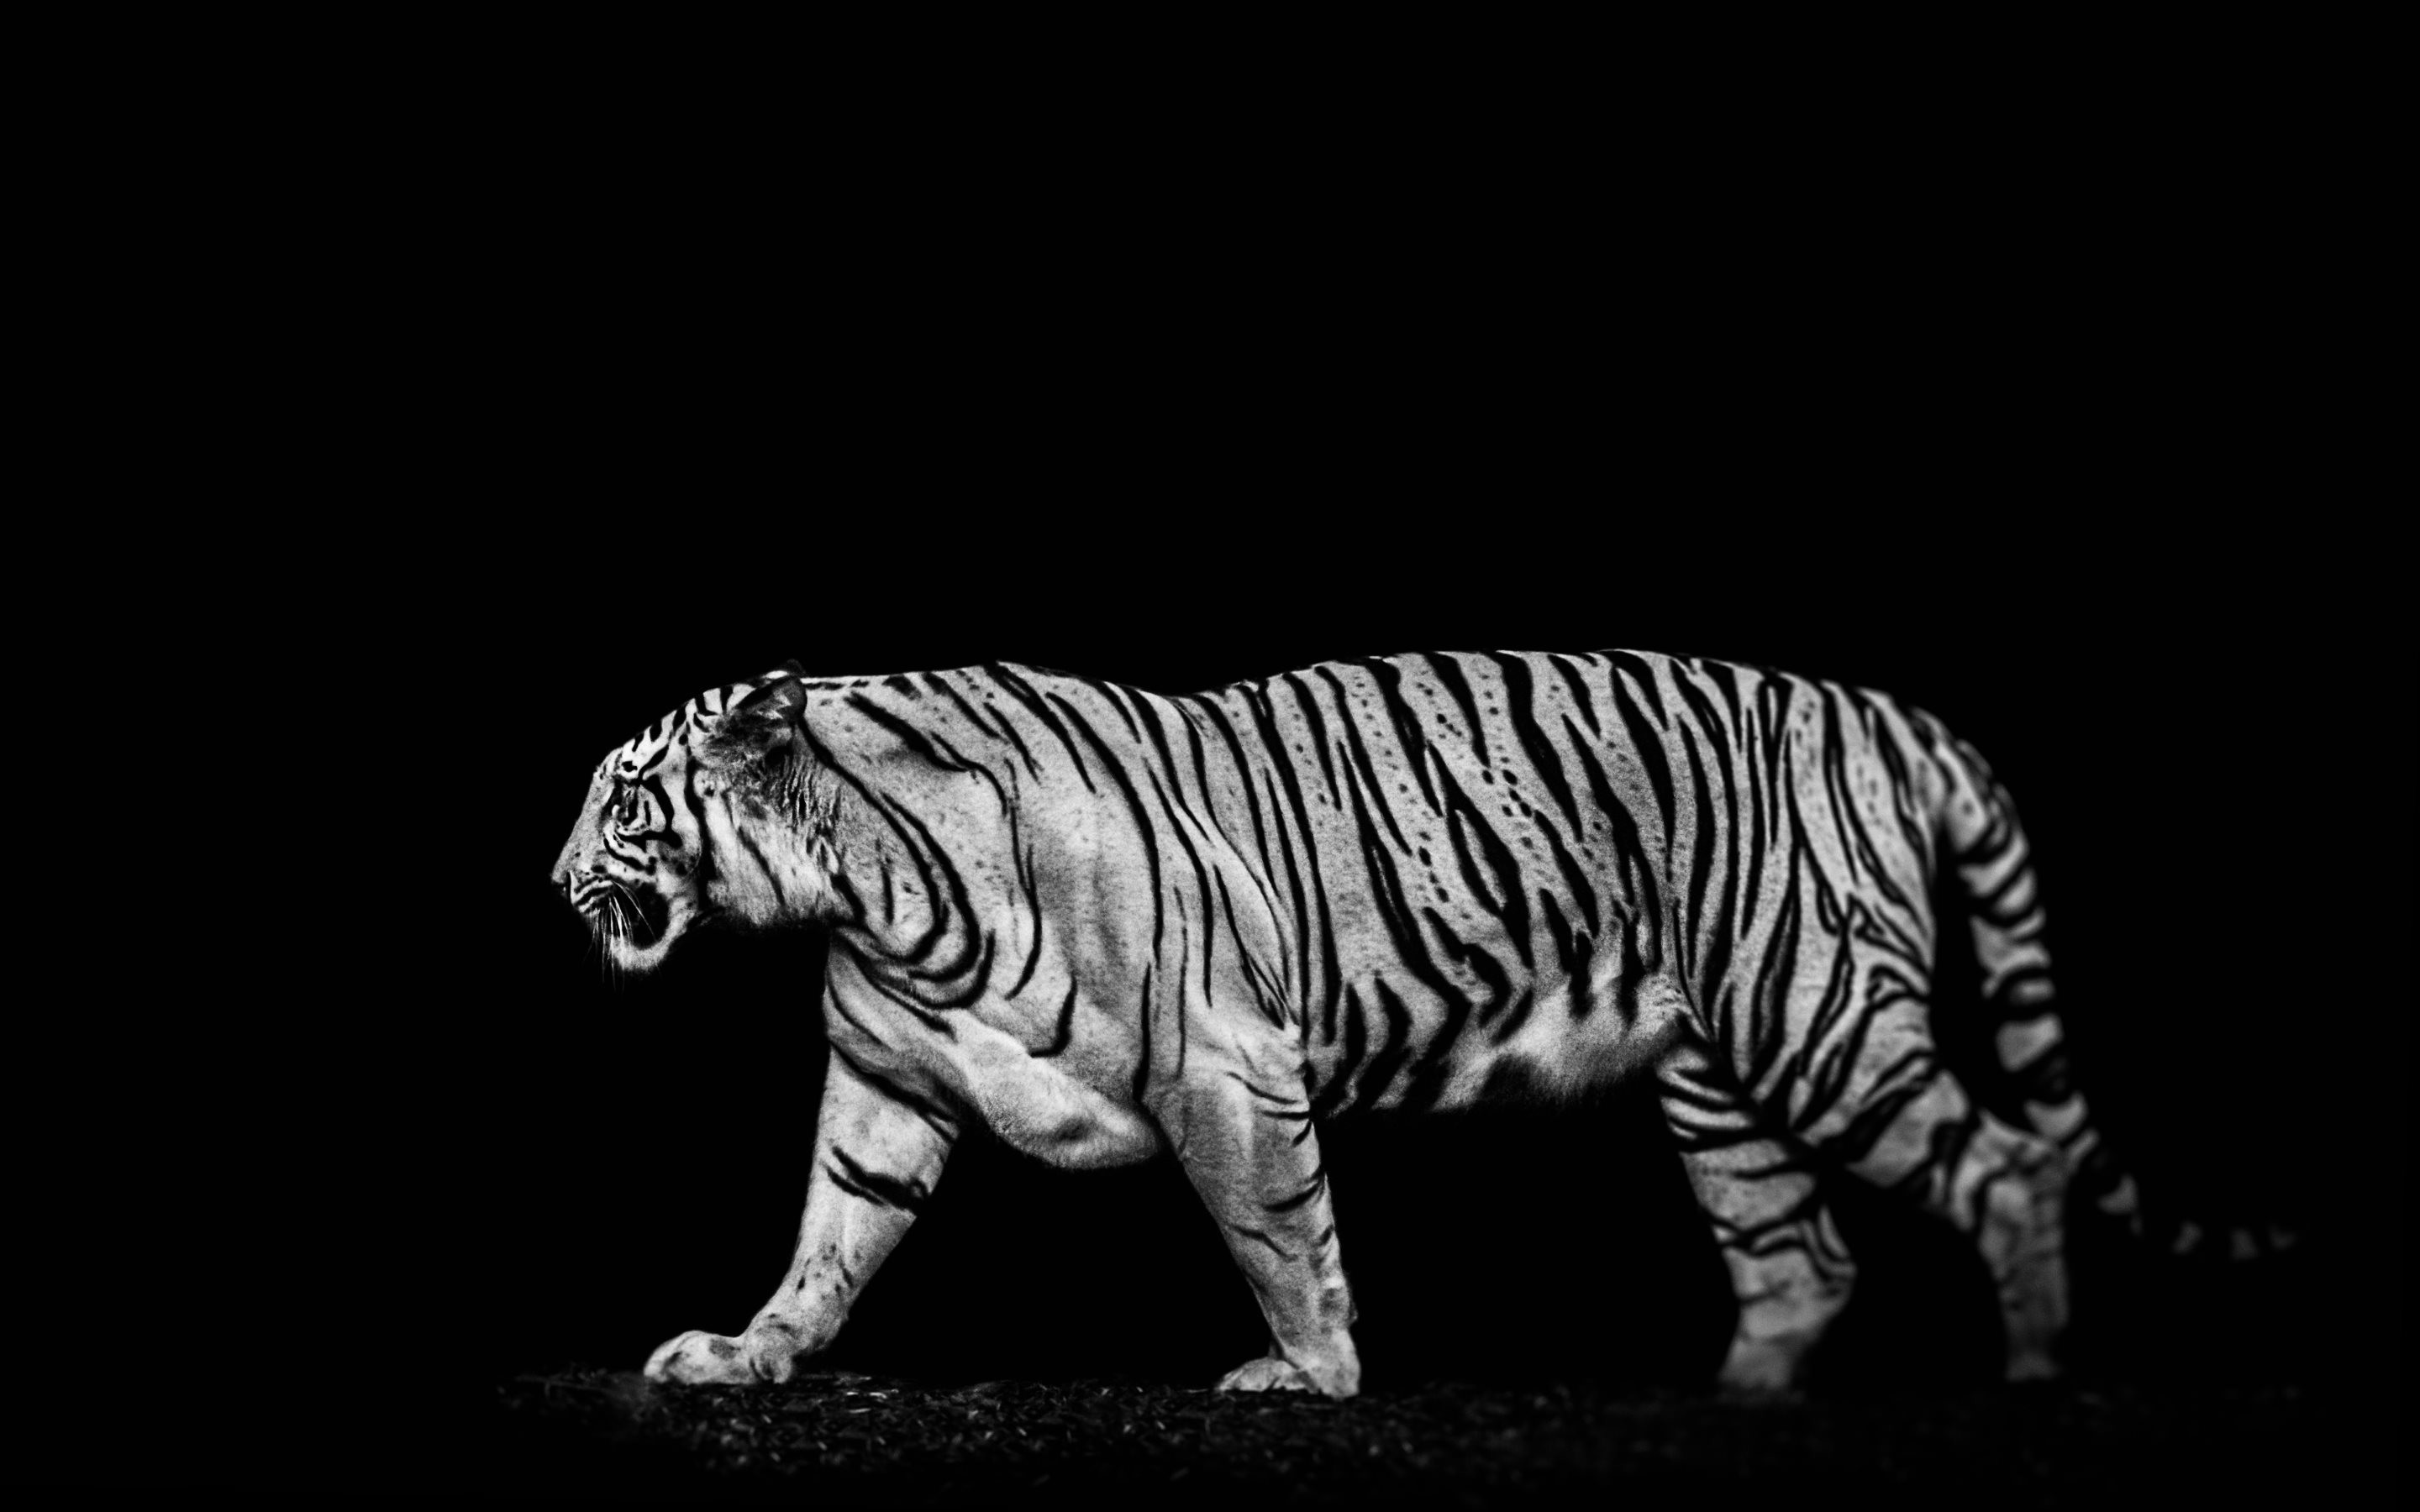 4k black wallpaper 57 images - Ultra hd animal wallpapers ...